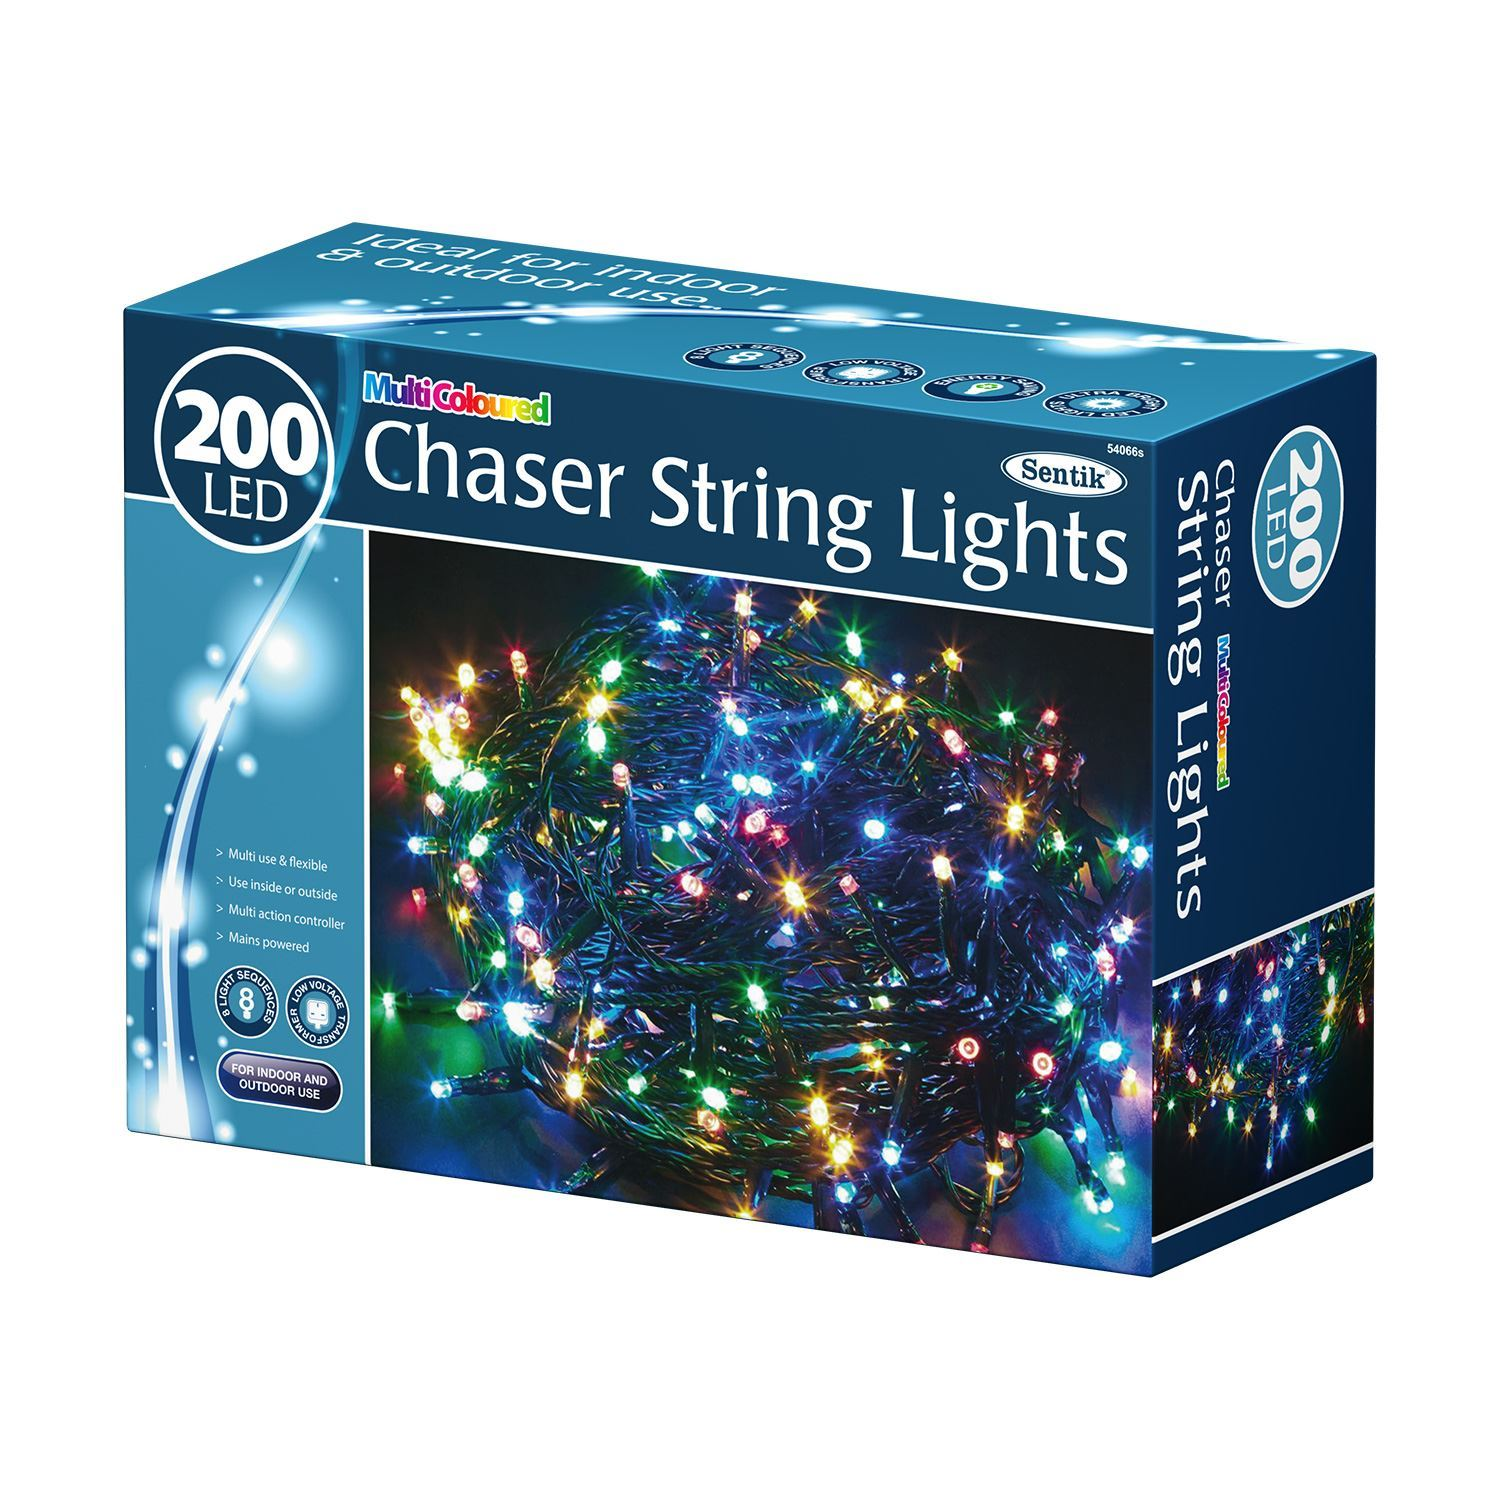 100 200 400 led chaser string fairy indoor